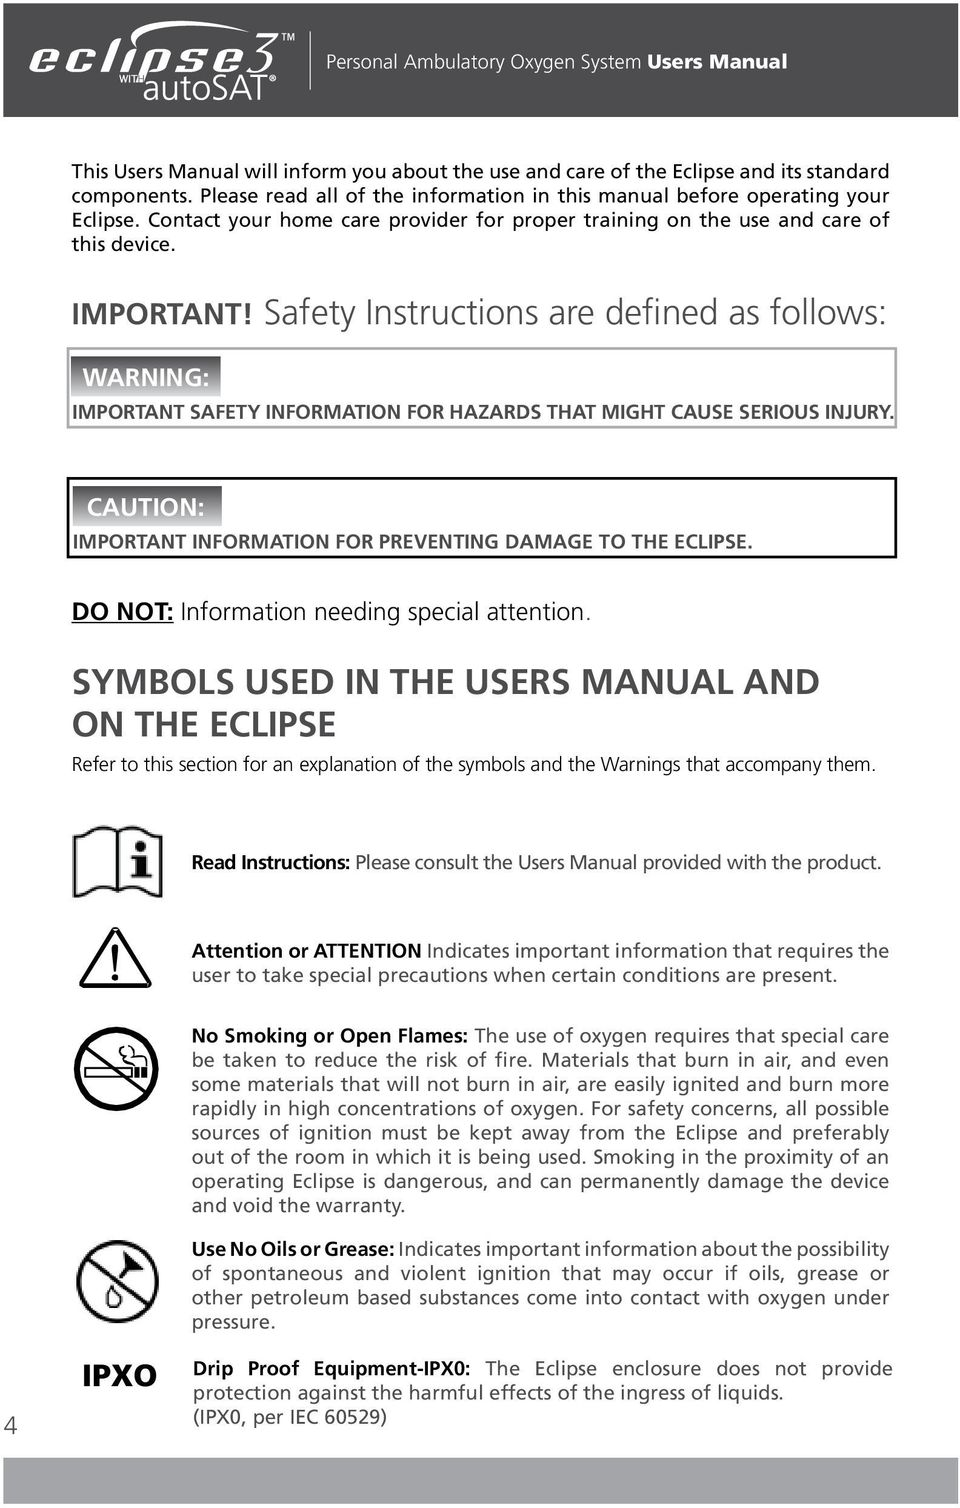 Safety Instructions are defined as follows: WARNING: Important safety information for hazards that might cause serious injury. CAUTION: Important information for preventing damage to the Eclipse.